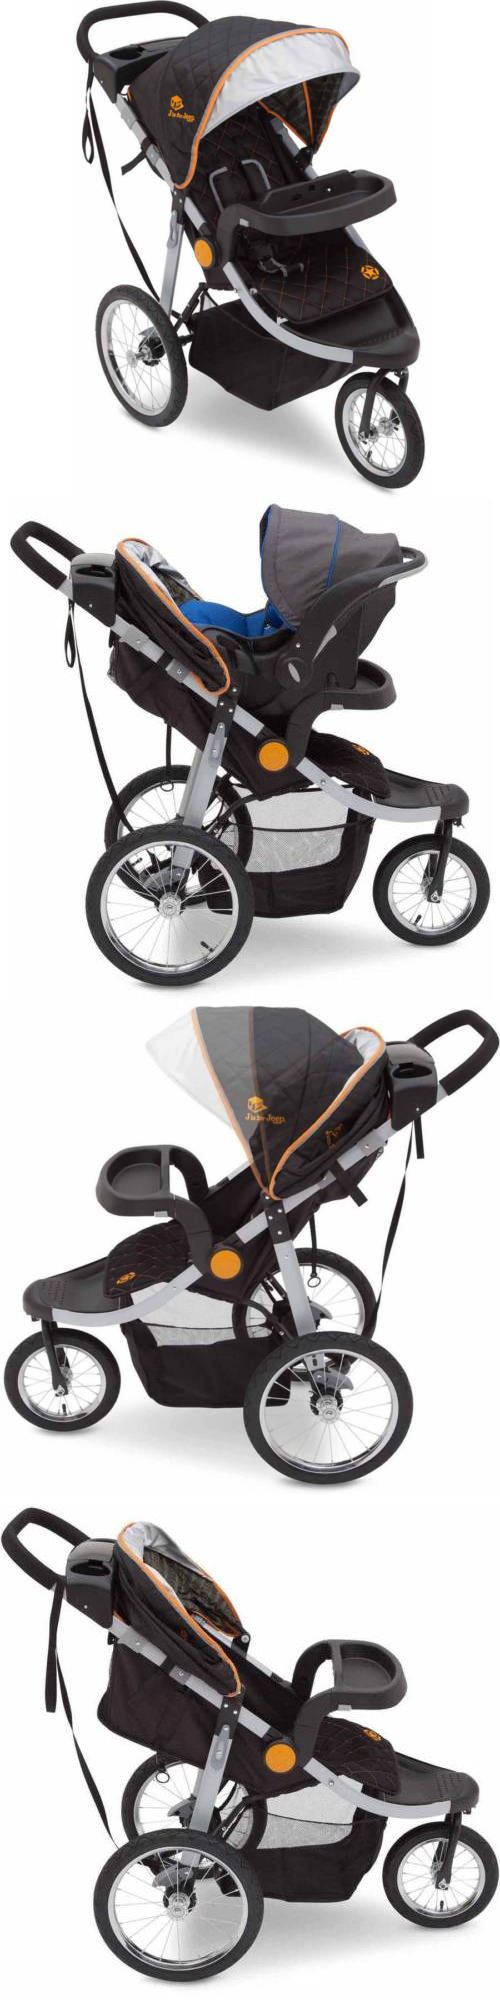 baby kid stuff: Jogging Stroller Jeep All Terrain Push Chair Pram Baby Child Travel Crib New BUY IT NOW ONLY: $165.84